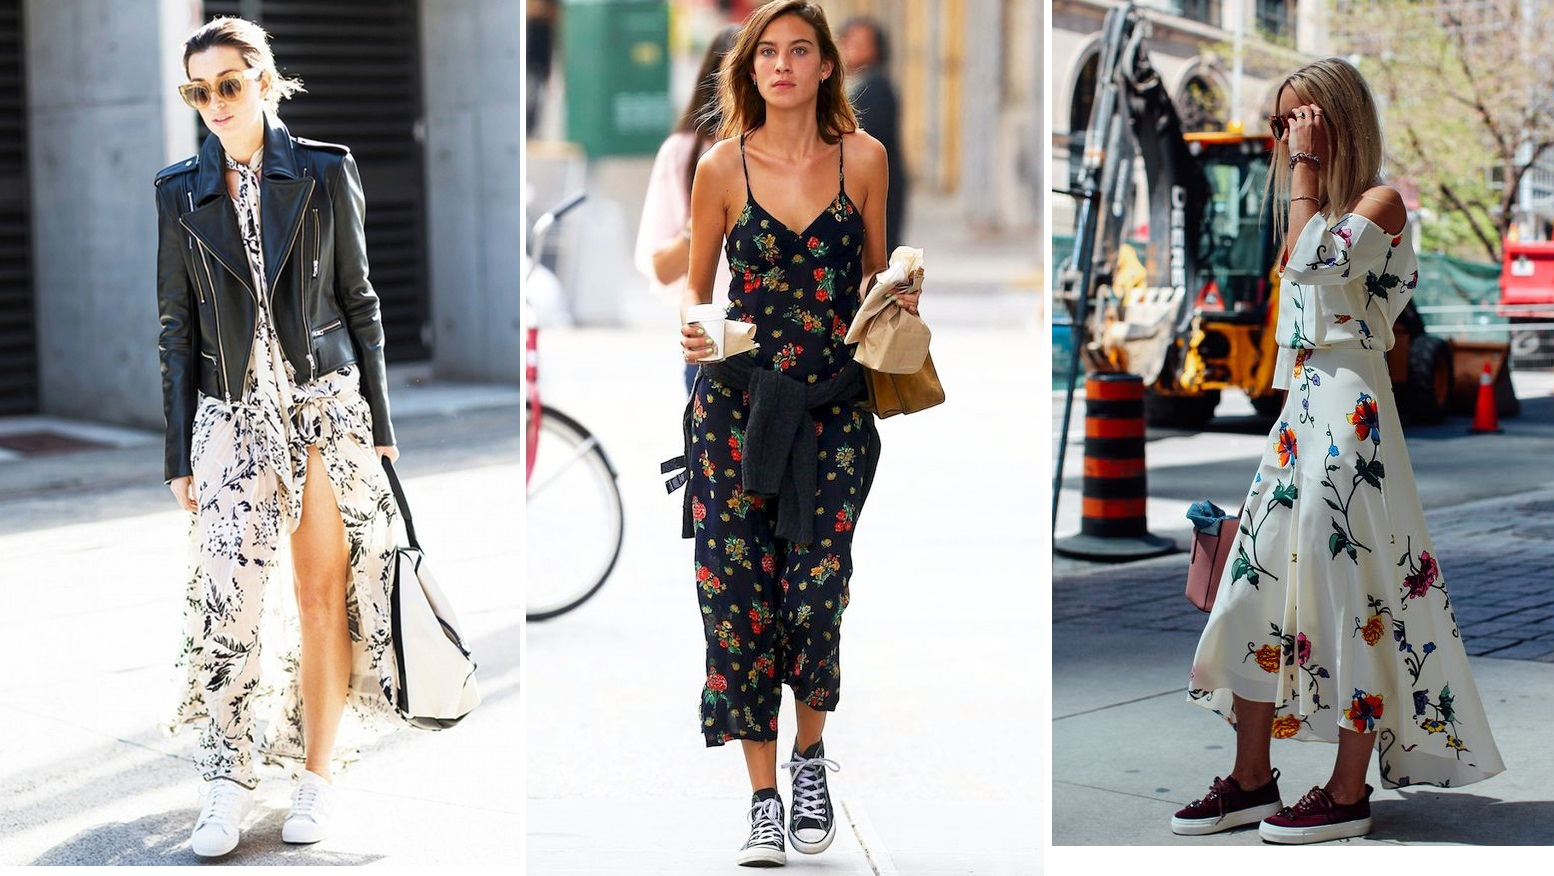 floral midi dress matching sneakers street style